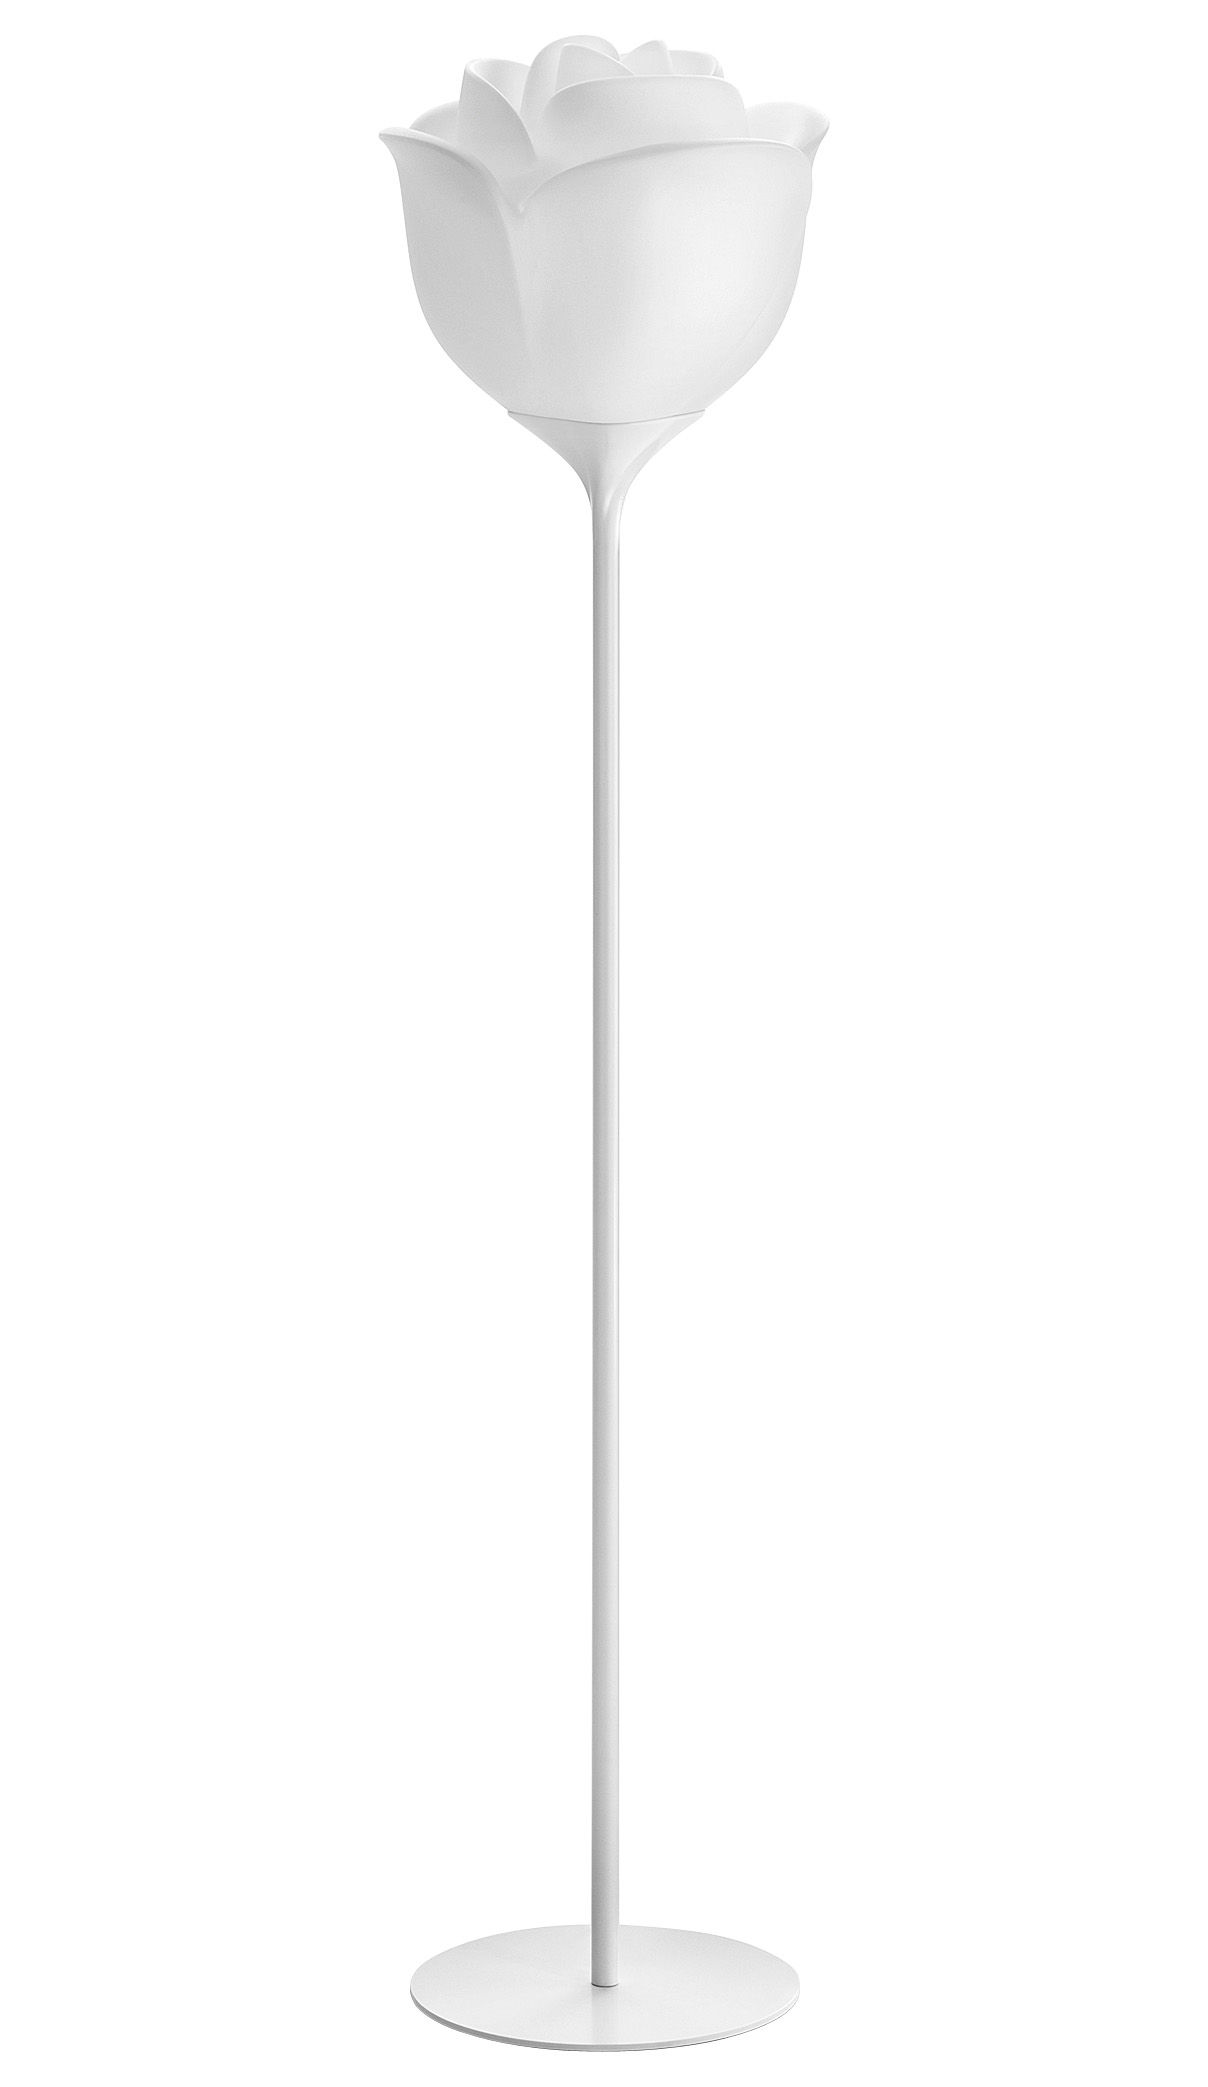 Lighting - Floor lamps - Baby Love Floor lamp - Outdoor - H 175 cm by MyYour - White - Lacquered steel, Plastic material